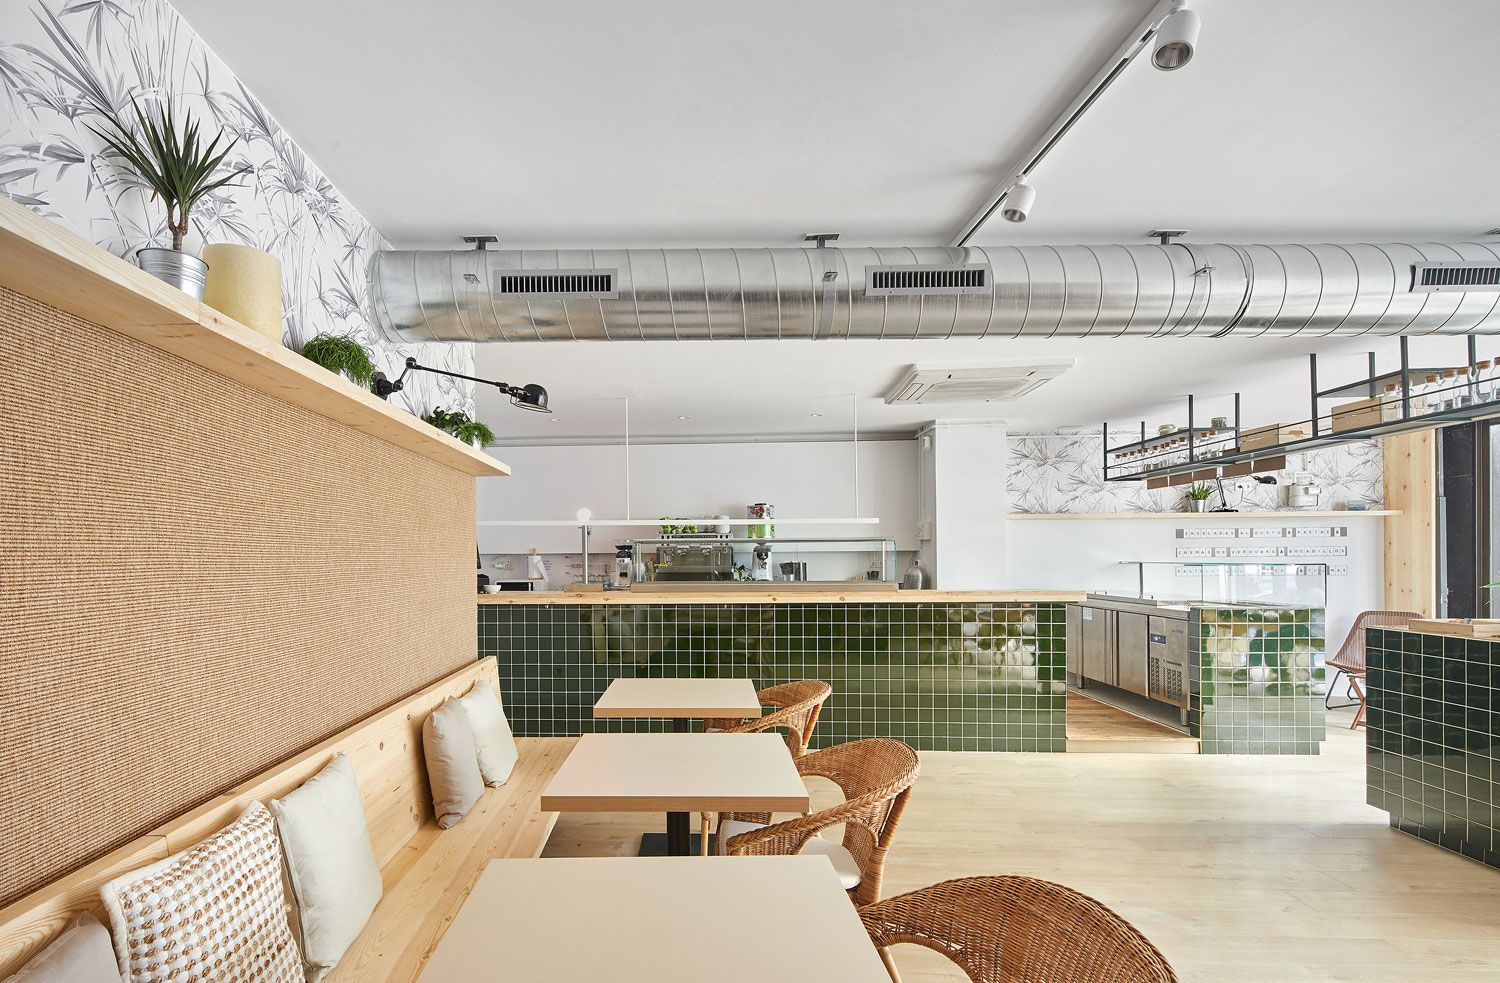 Verd go restaurant in barcelona by scala studio restaurants verd go restaurant in barcelona by scala studio malvernweather Choice Image